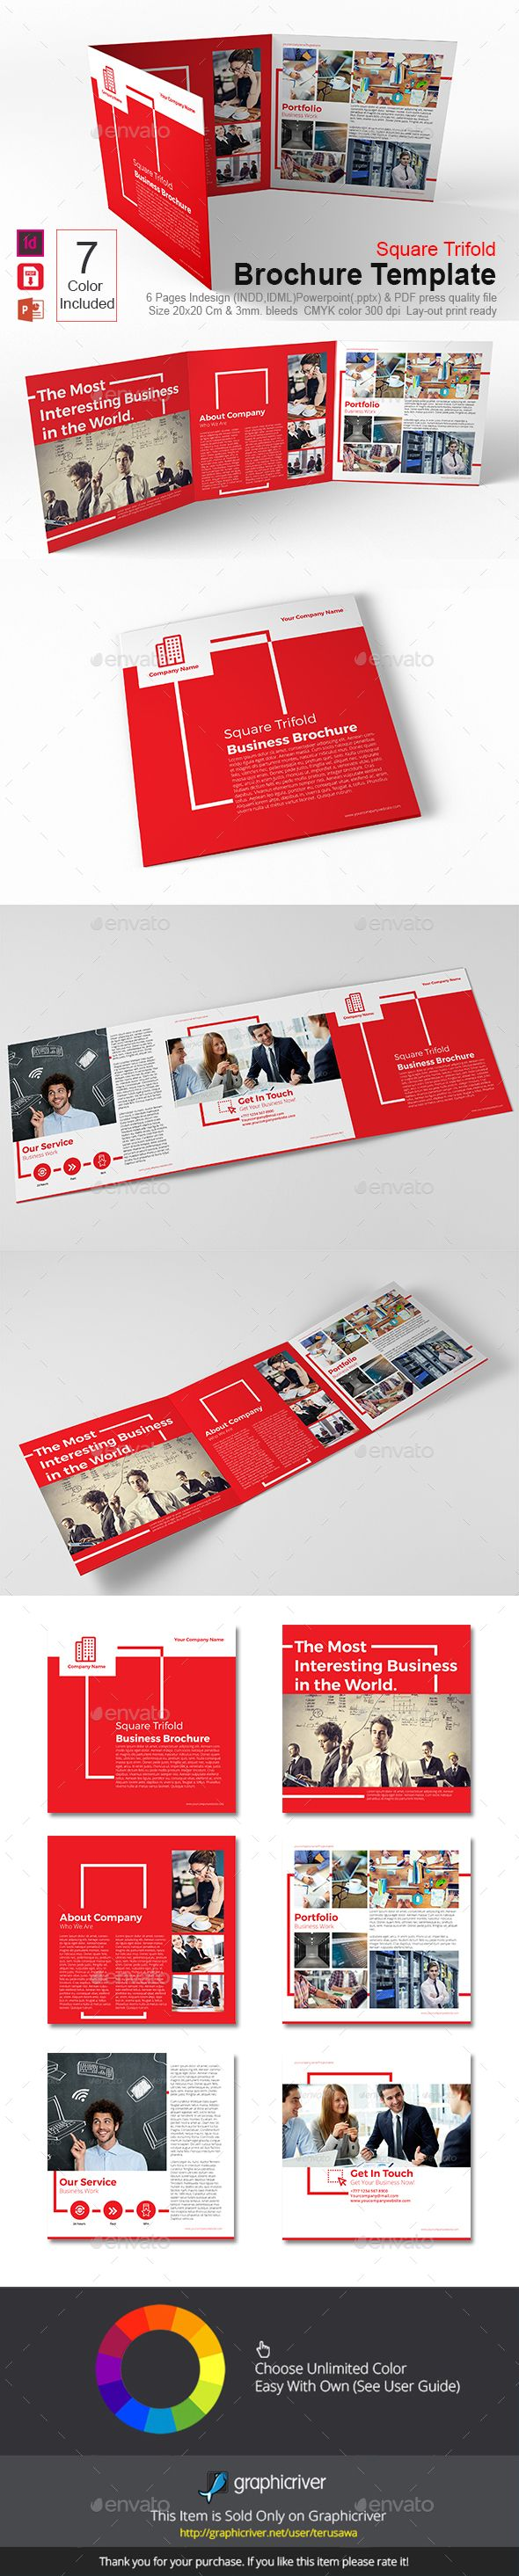 Square Trifold Brochure Template InDesign INDD. Download here…